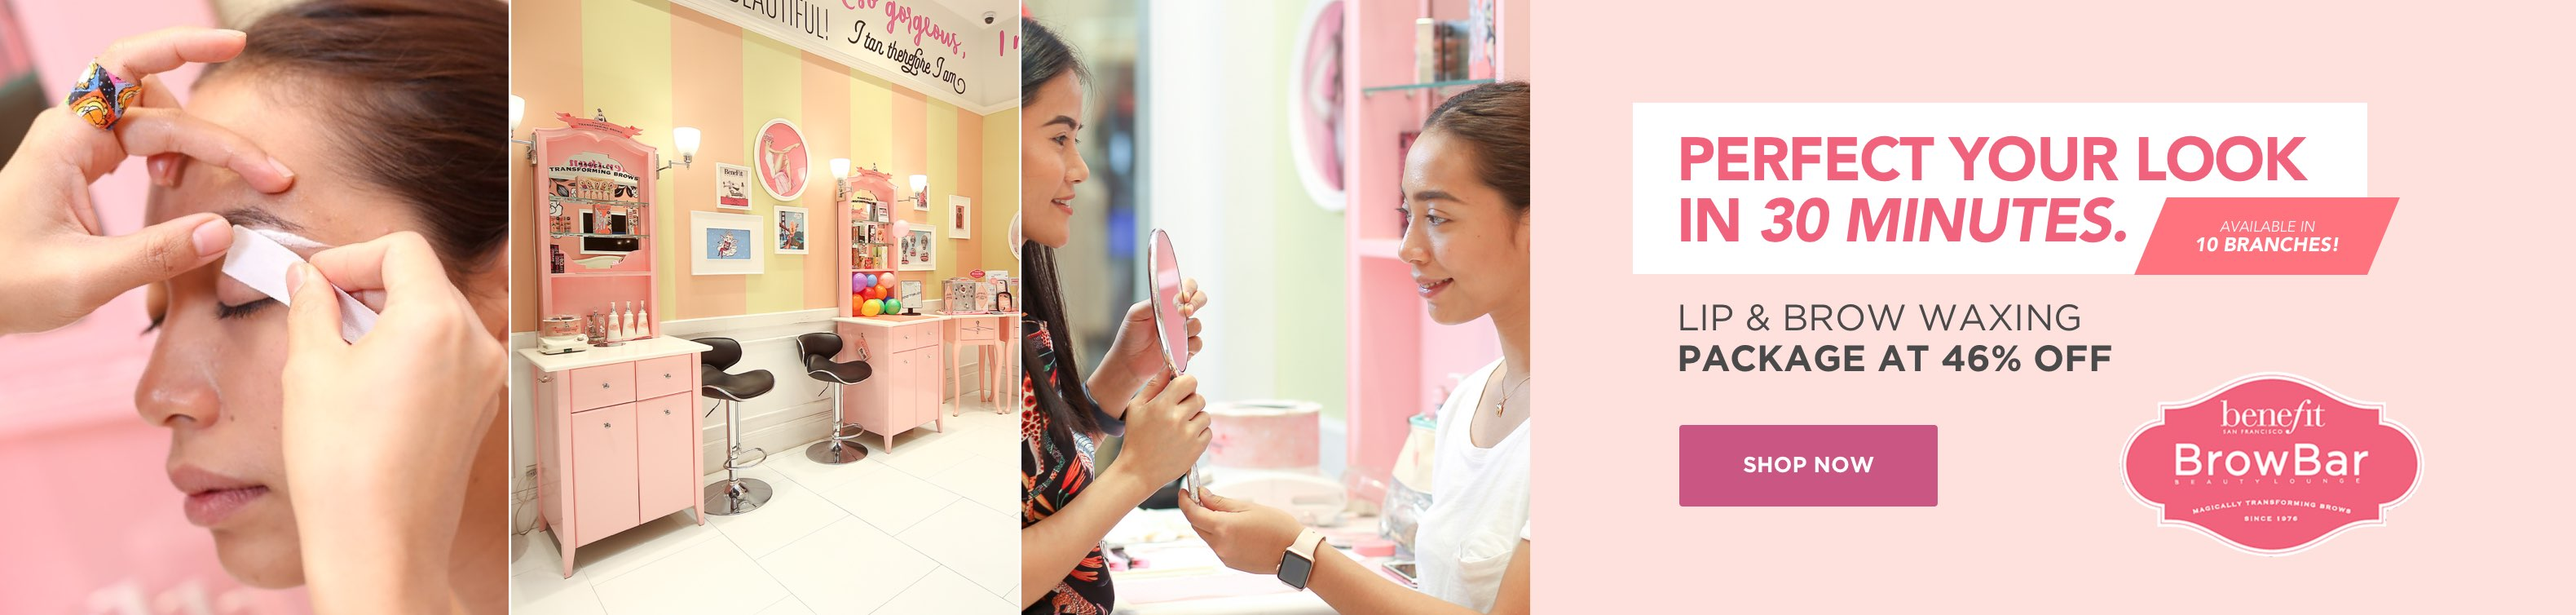 Now on BeautyMNL: Benefit Brow Bar